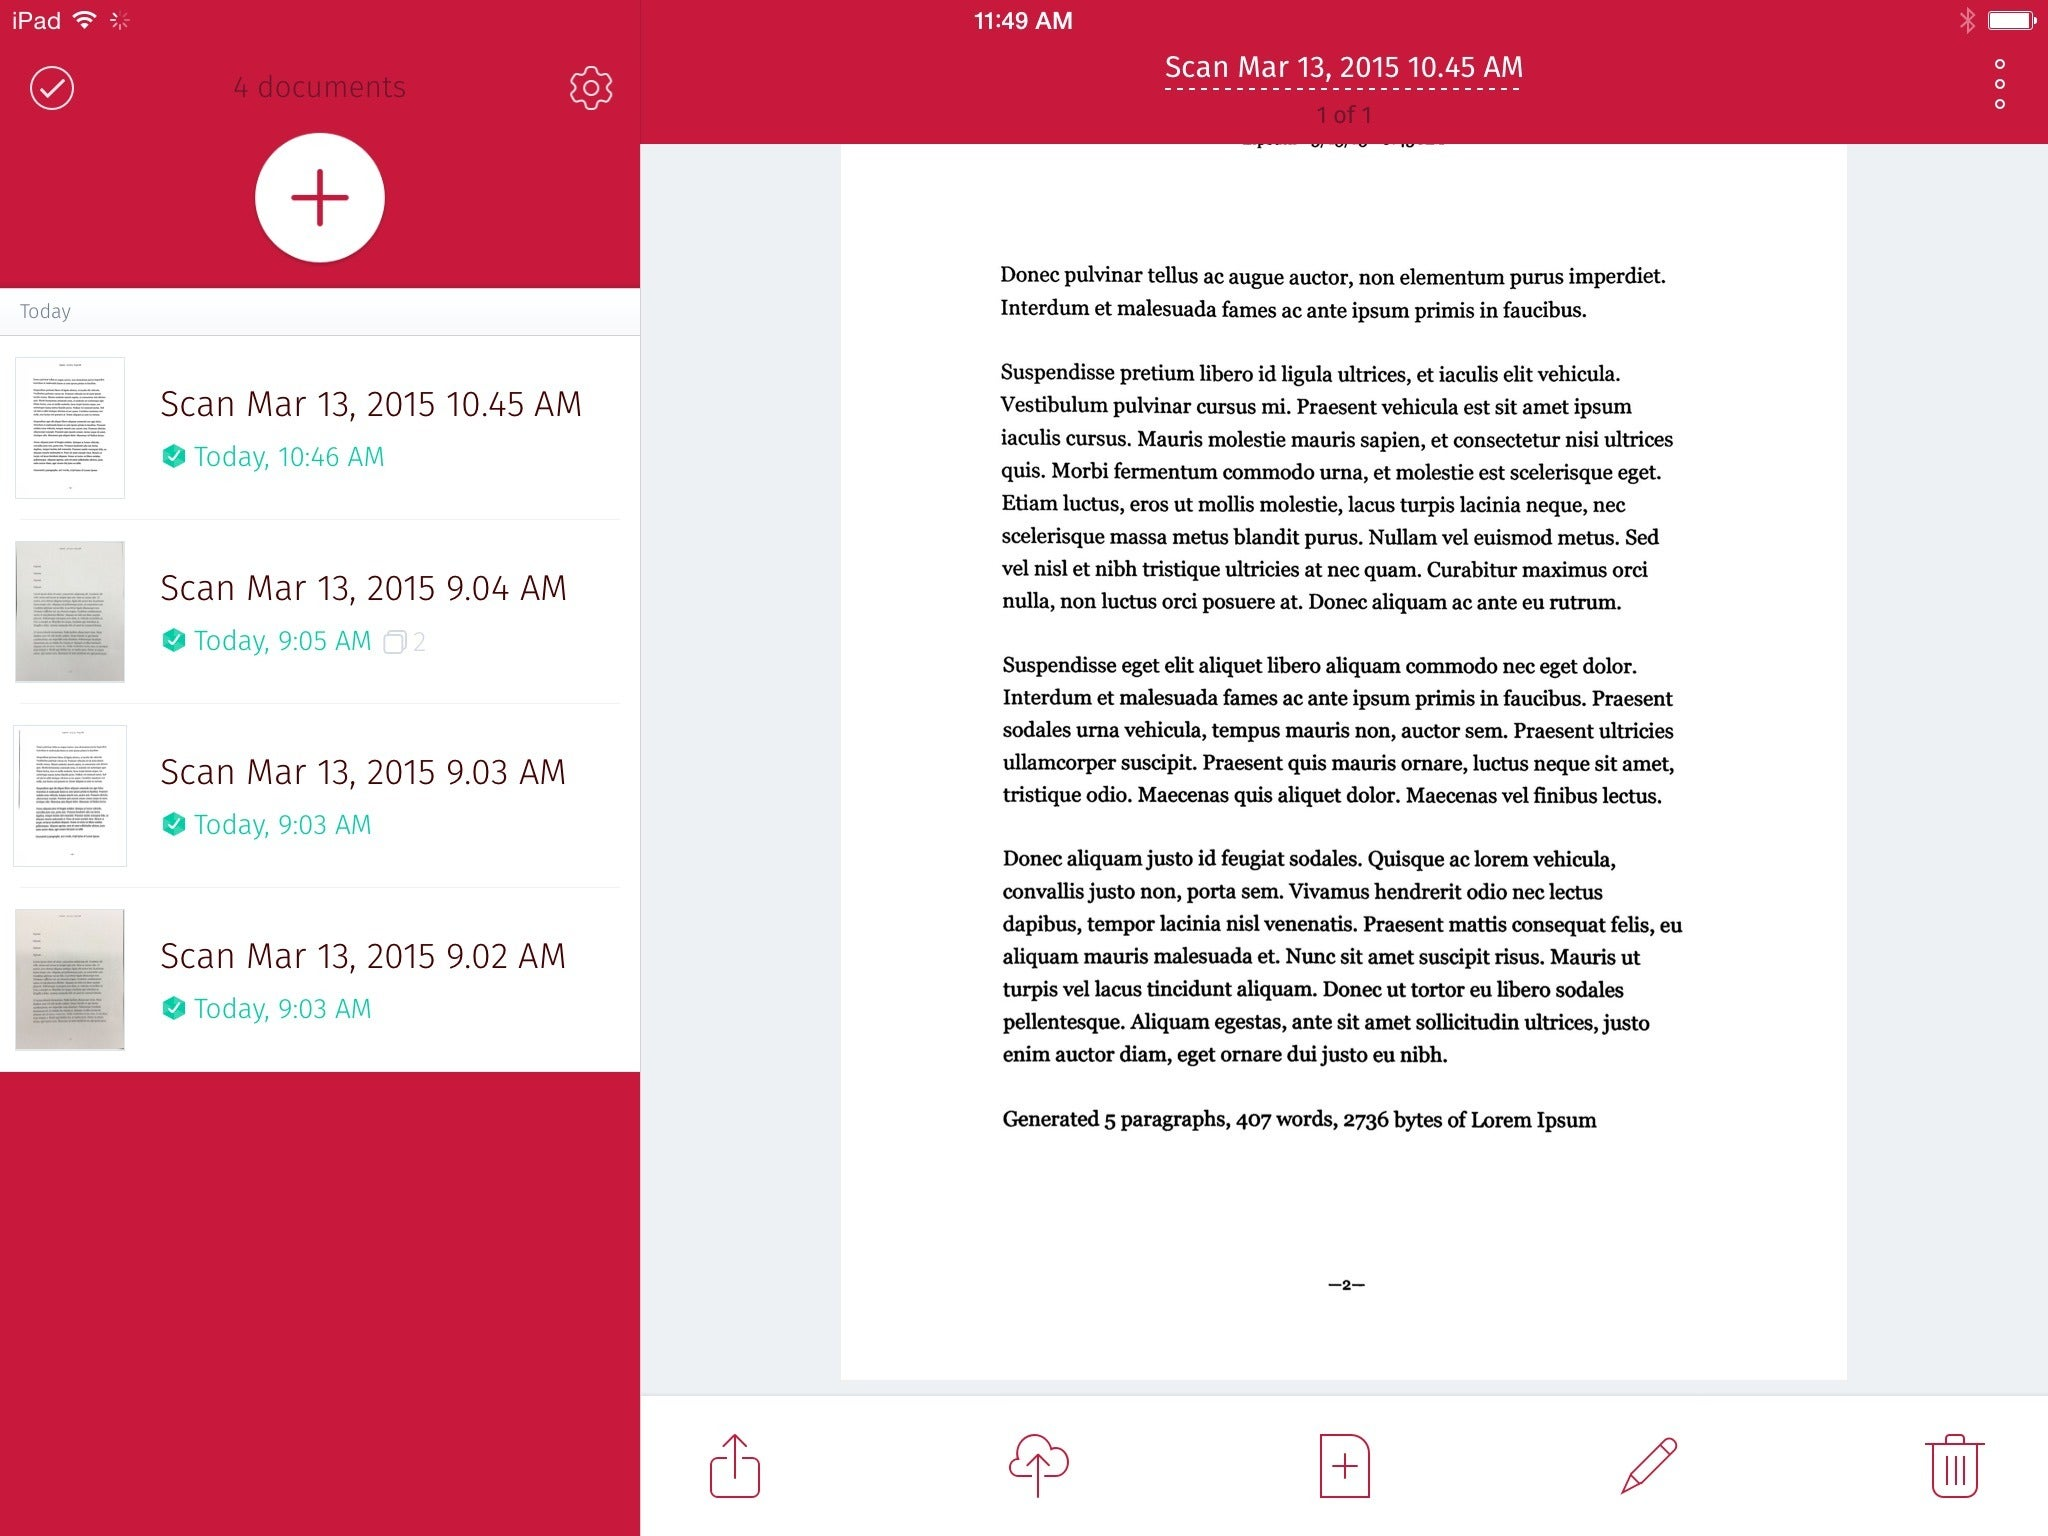 Take the hassle out of scanning documents macworld scanbot 371 for ipad reheart Image collections